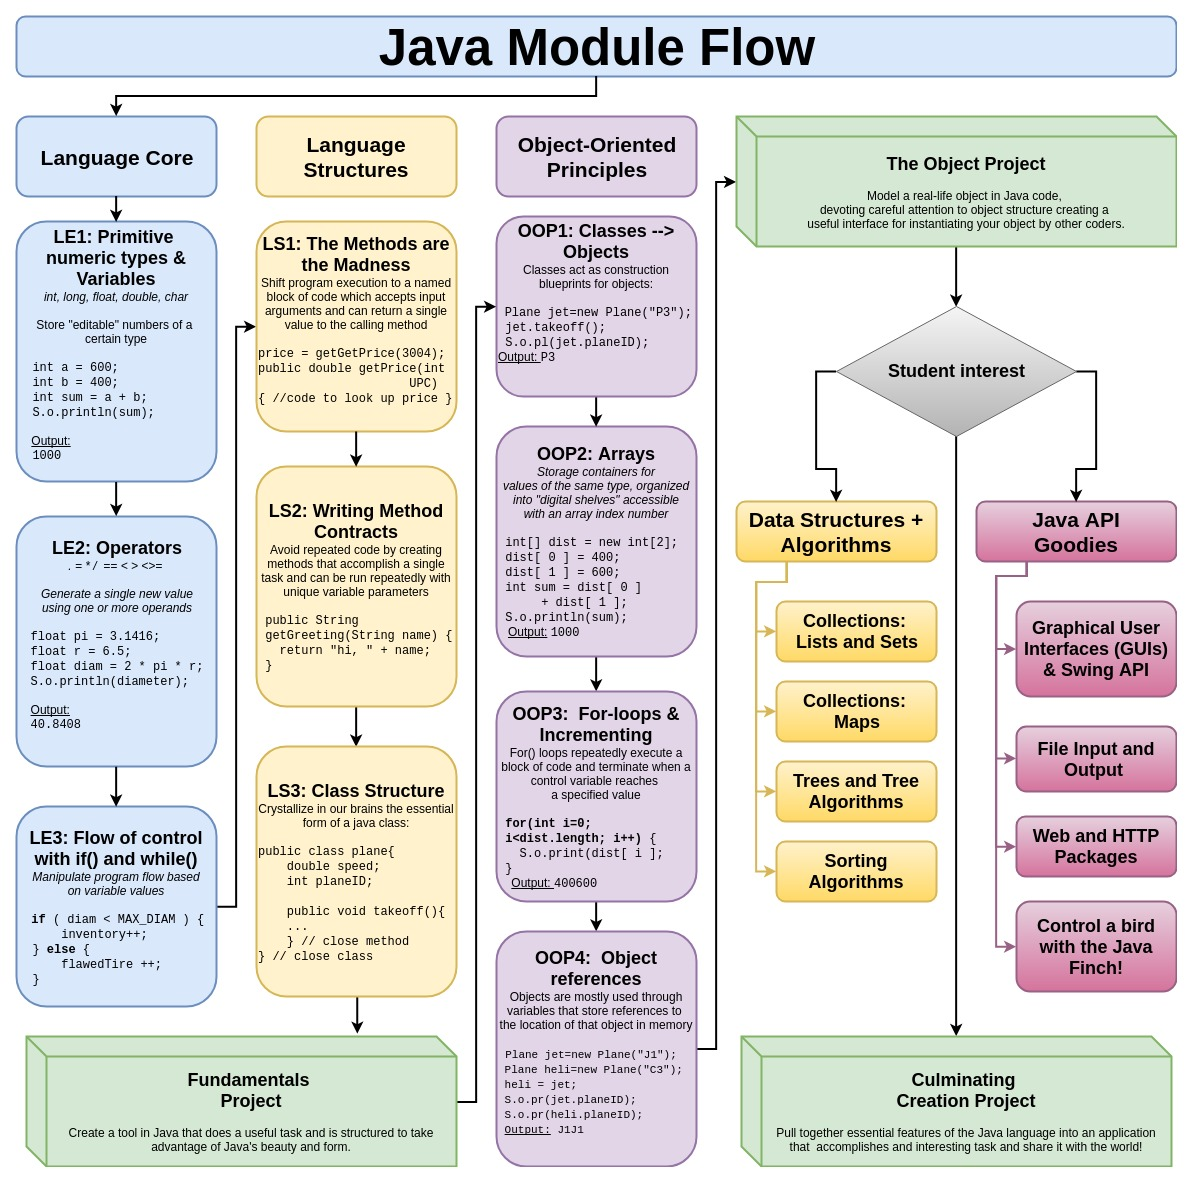 Java course modules a flow diagram of our learning components columns and modules boxes java module flow ccuart Image collections